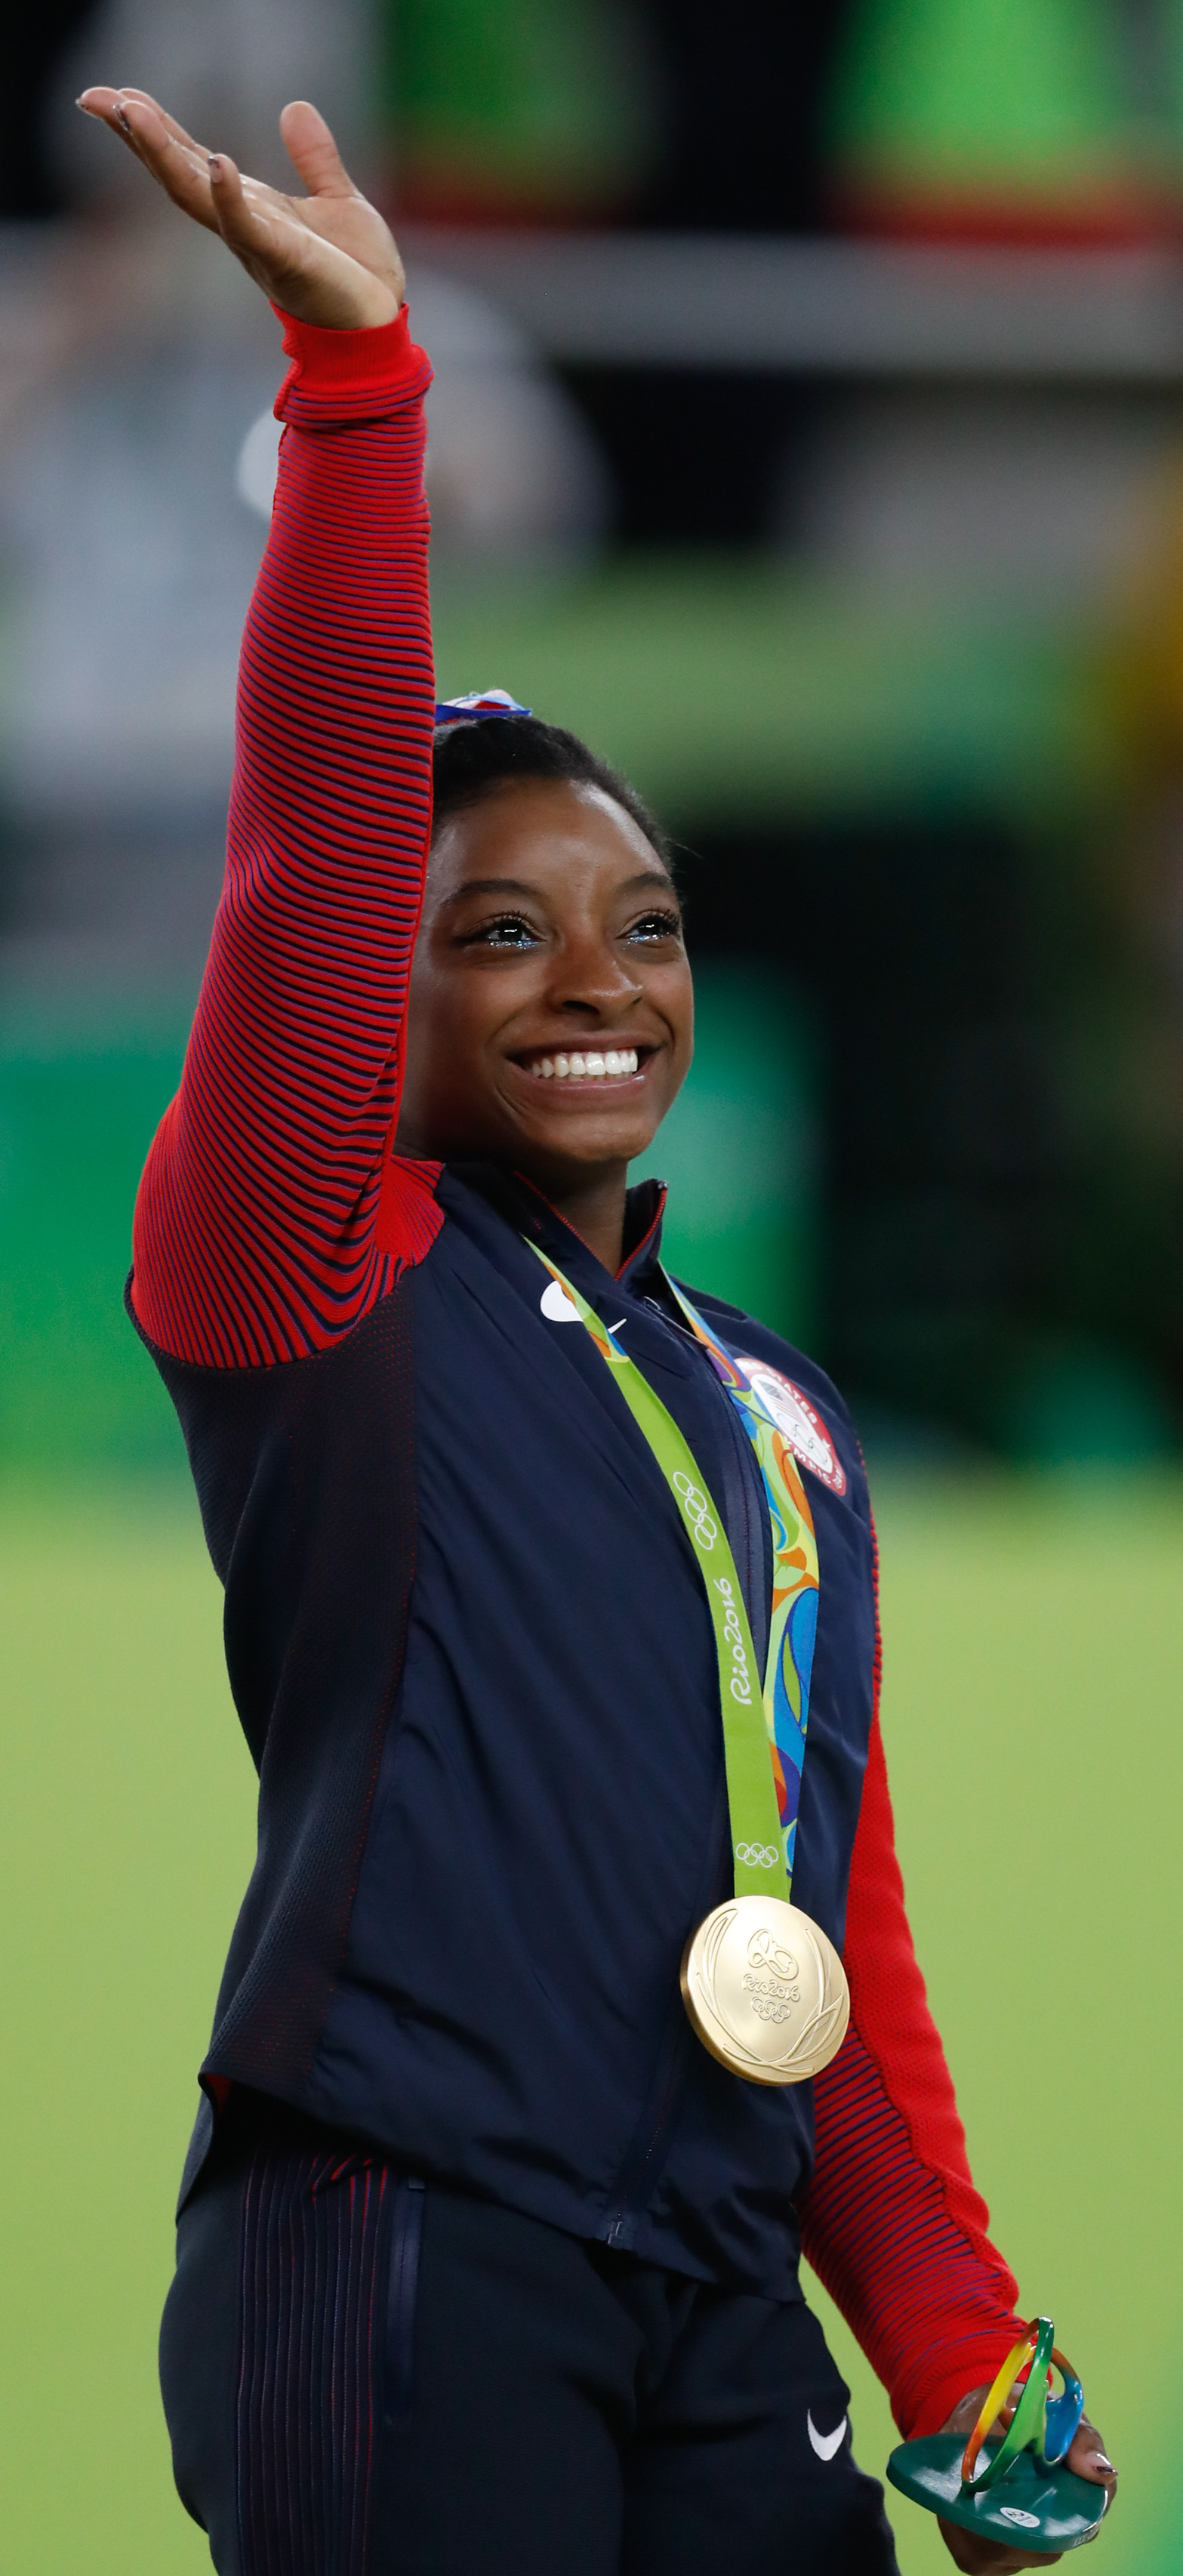 The 21-year old daughter of father Ronald Biles and mother Nellie Biles Simone Biles in 2018 photo. Simone Biles earned a  million dollar salary - leaving the net worth at 2 million in 2018